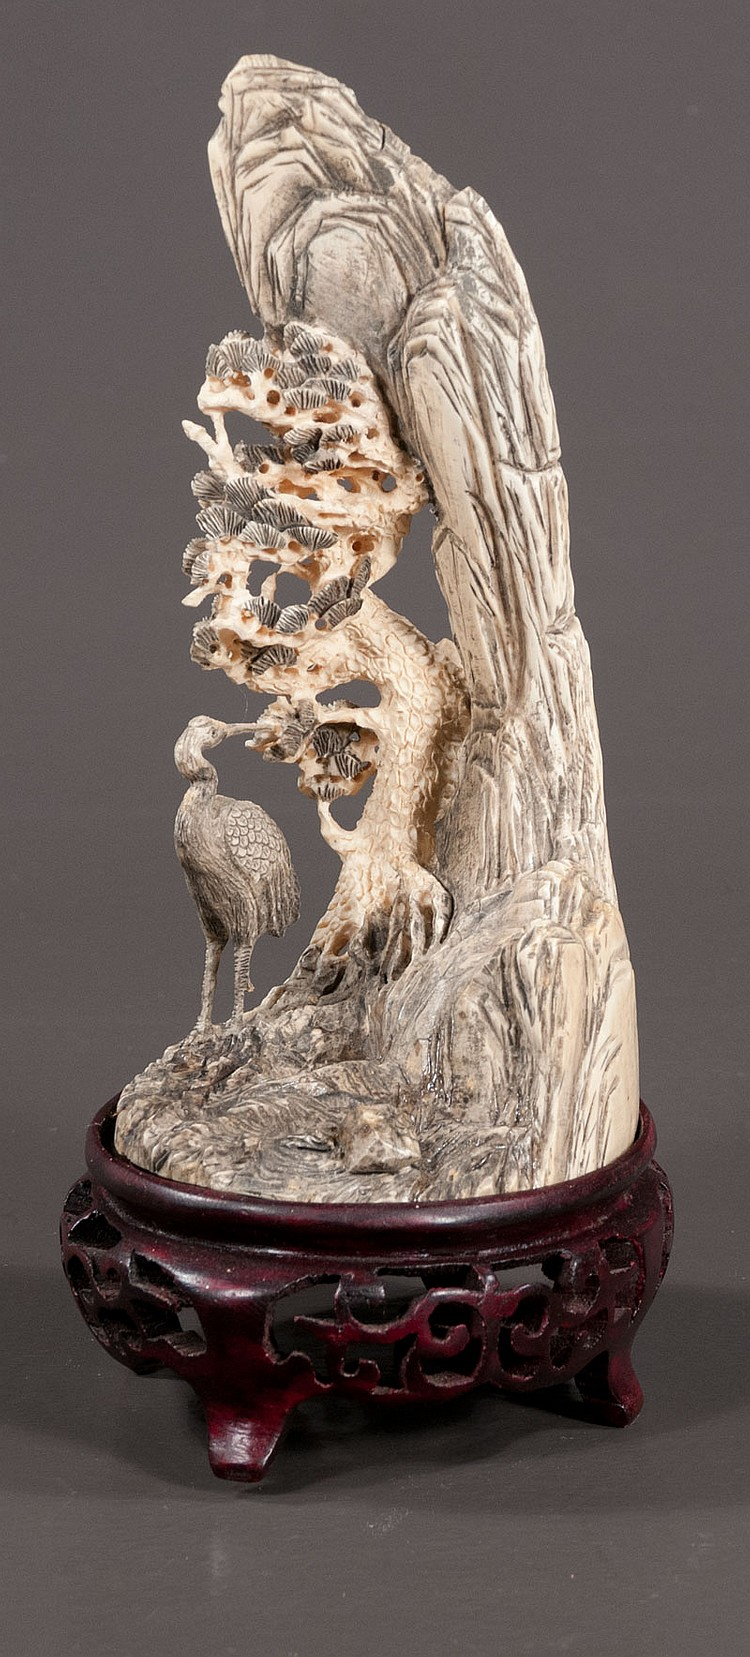 19th century Chinese carved ivory group with a crane at the base of a tree and a rock formation, 4